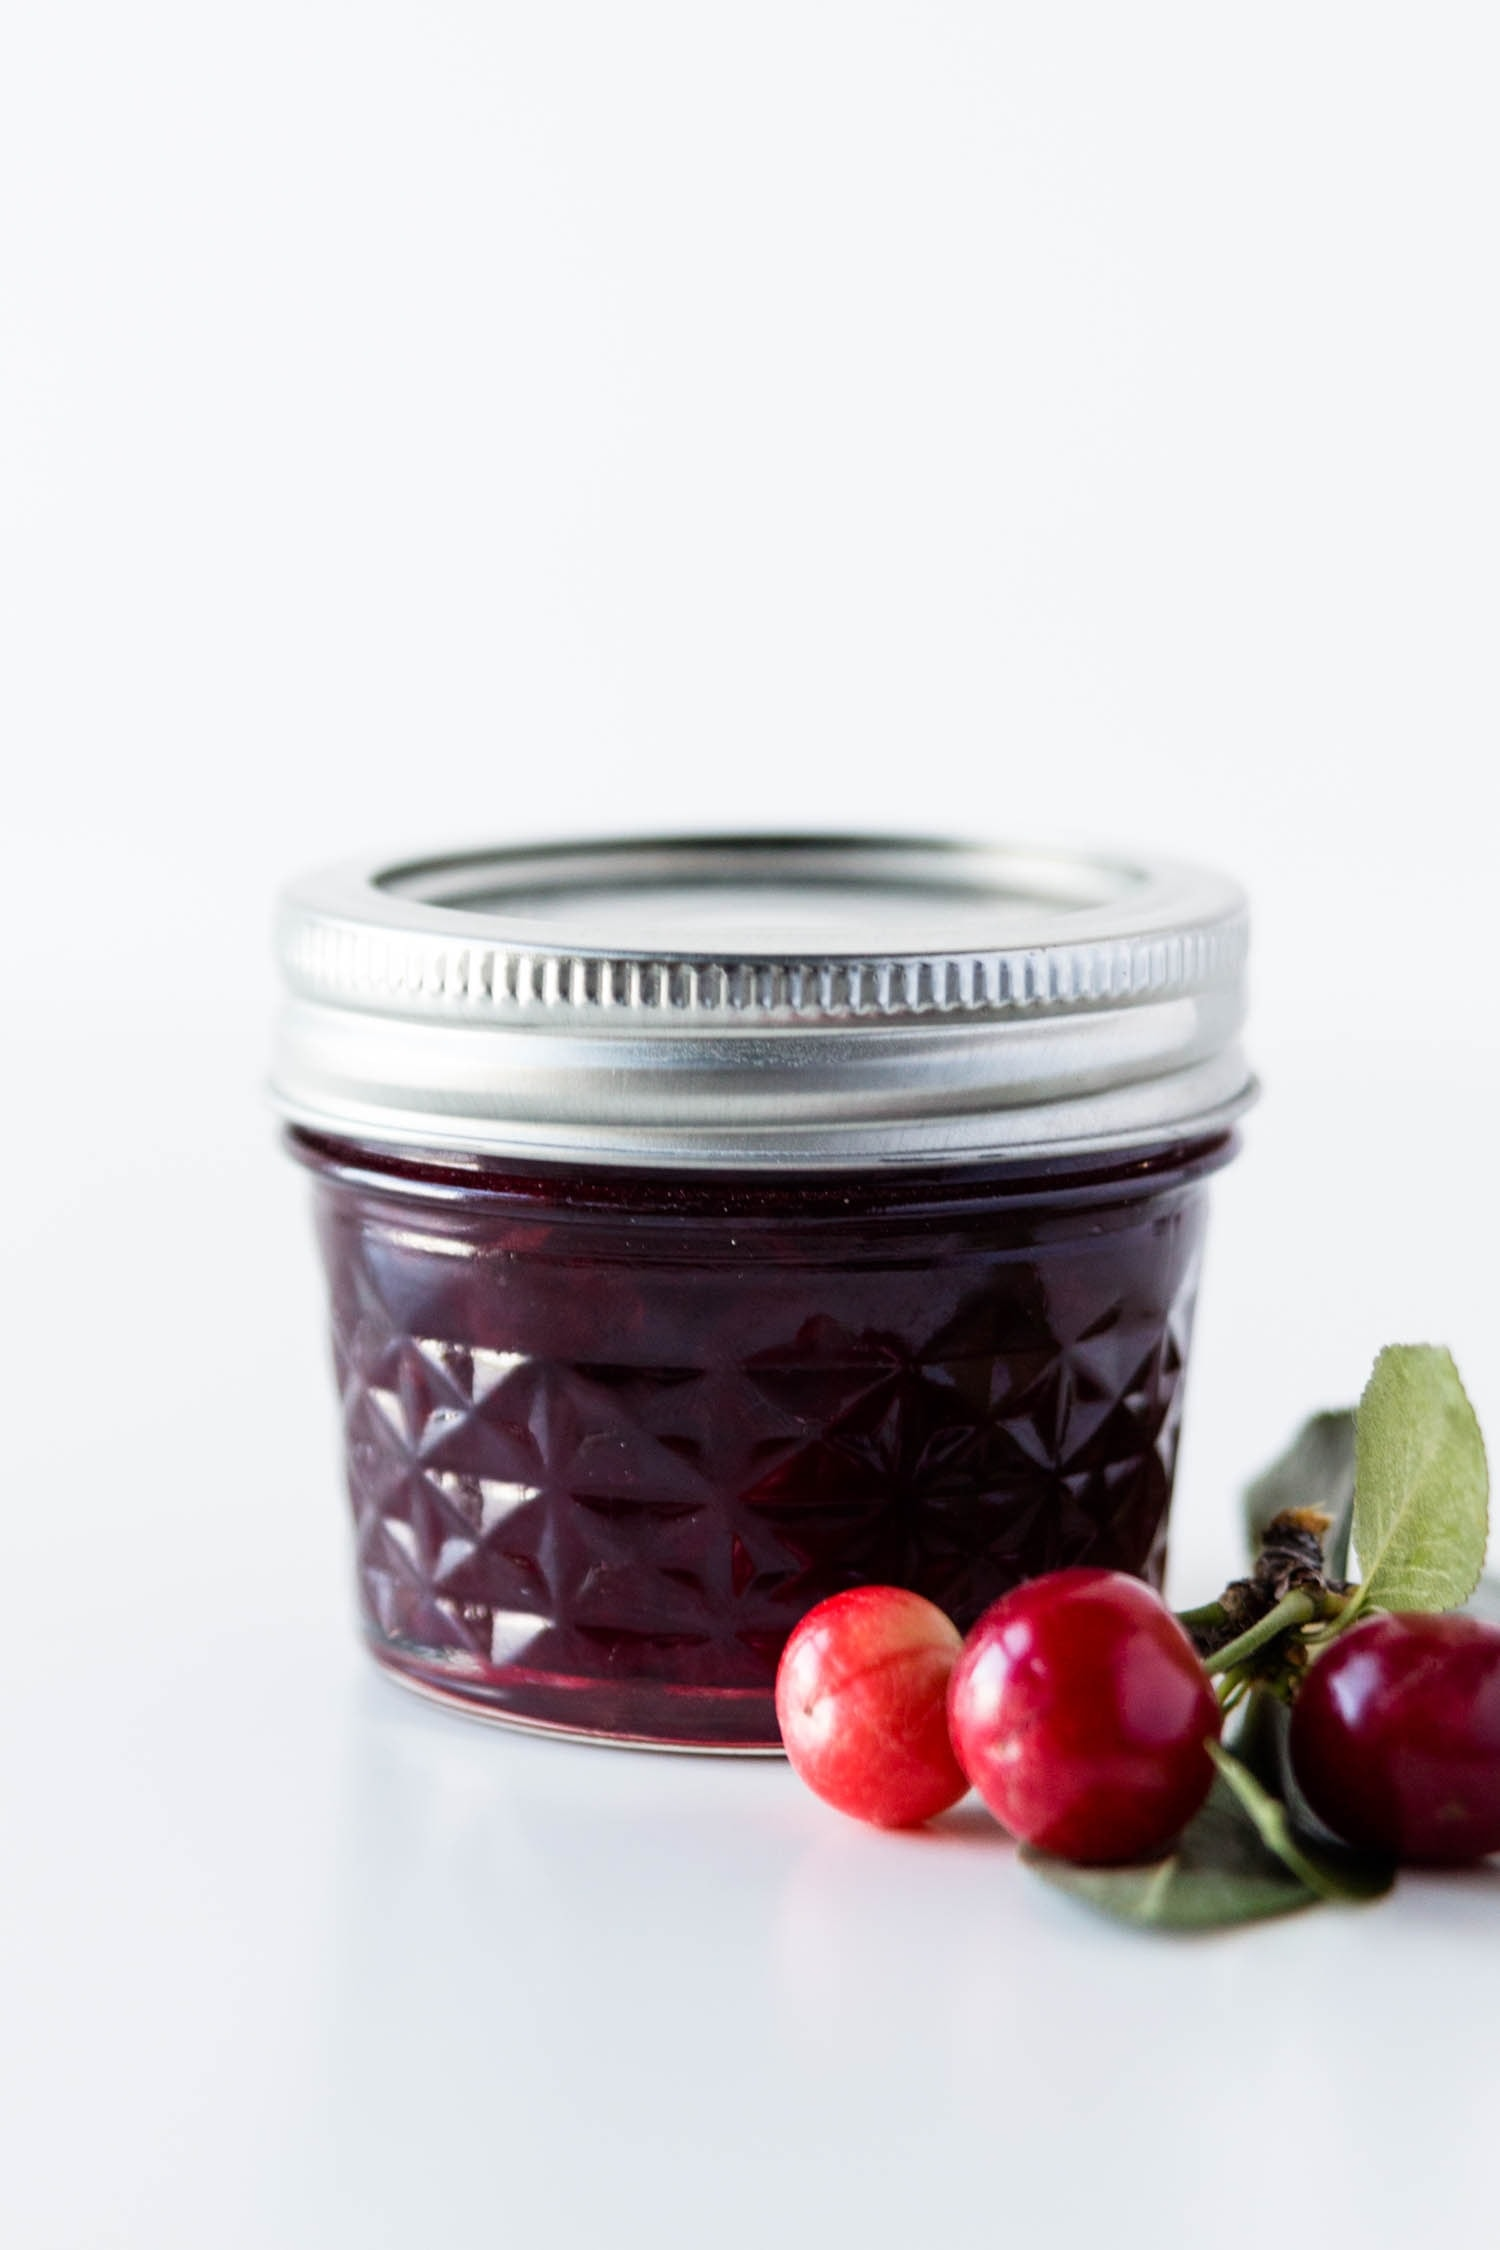 Jar of cherry jam with cherries in front on a white surface